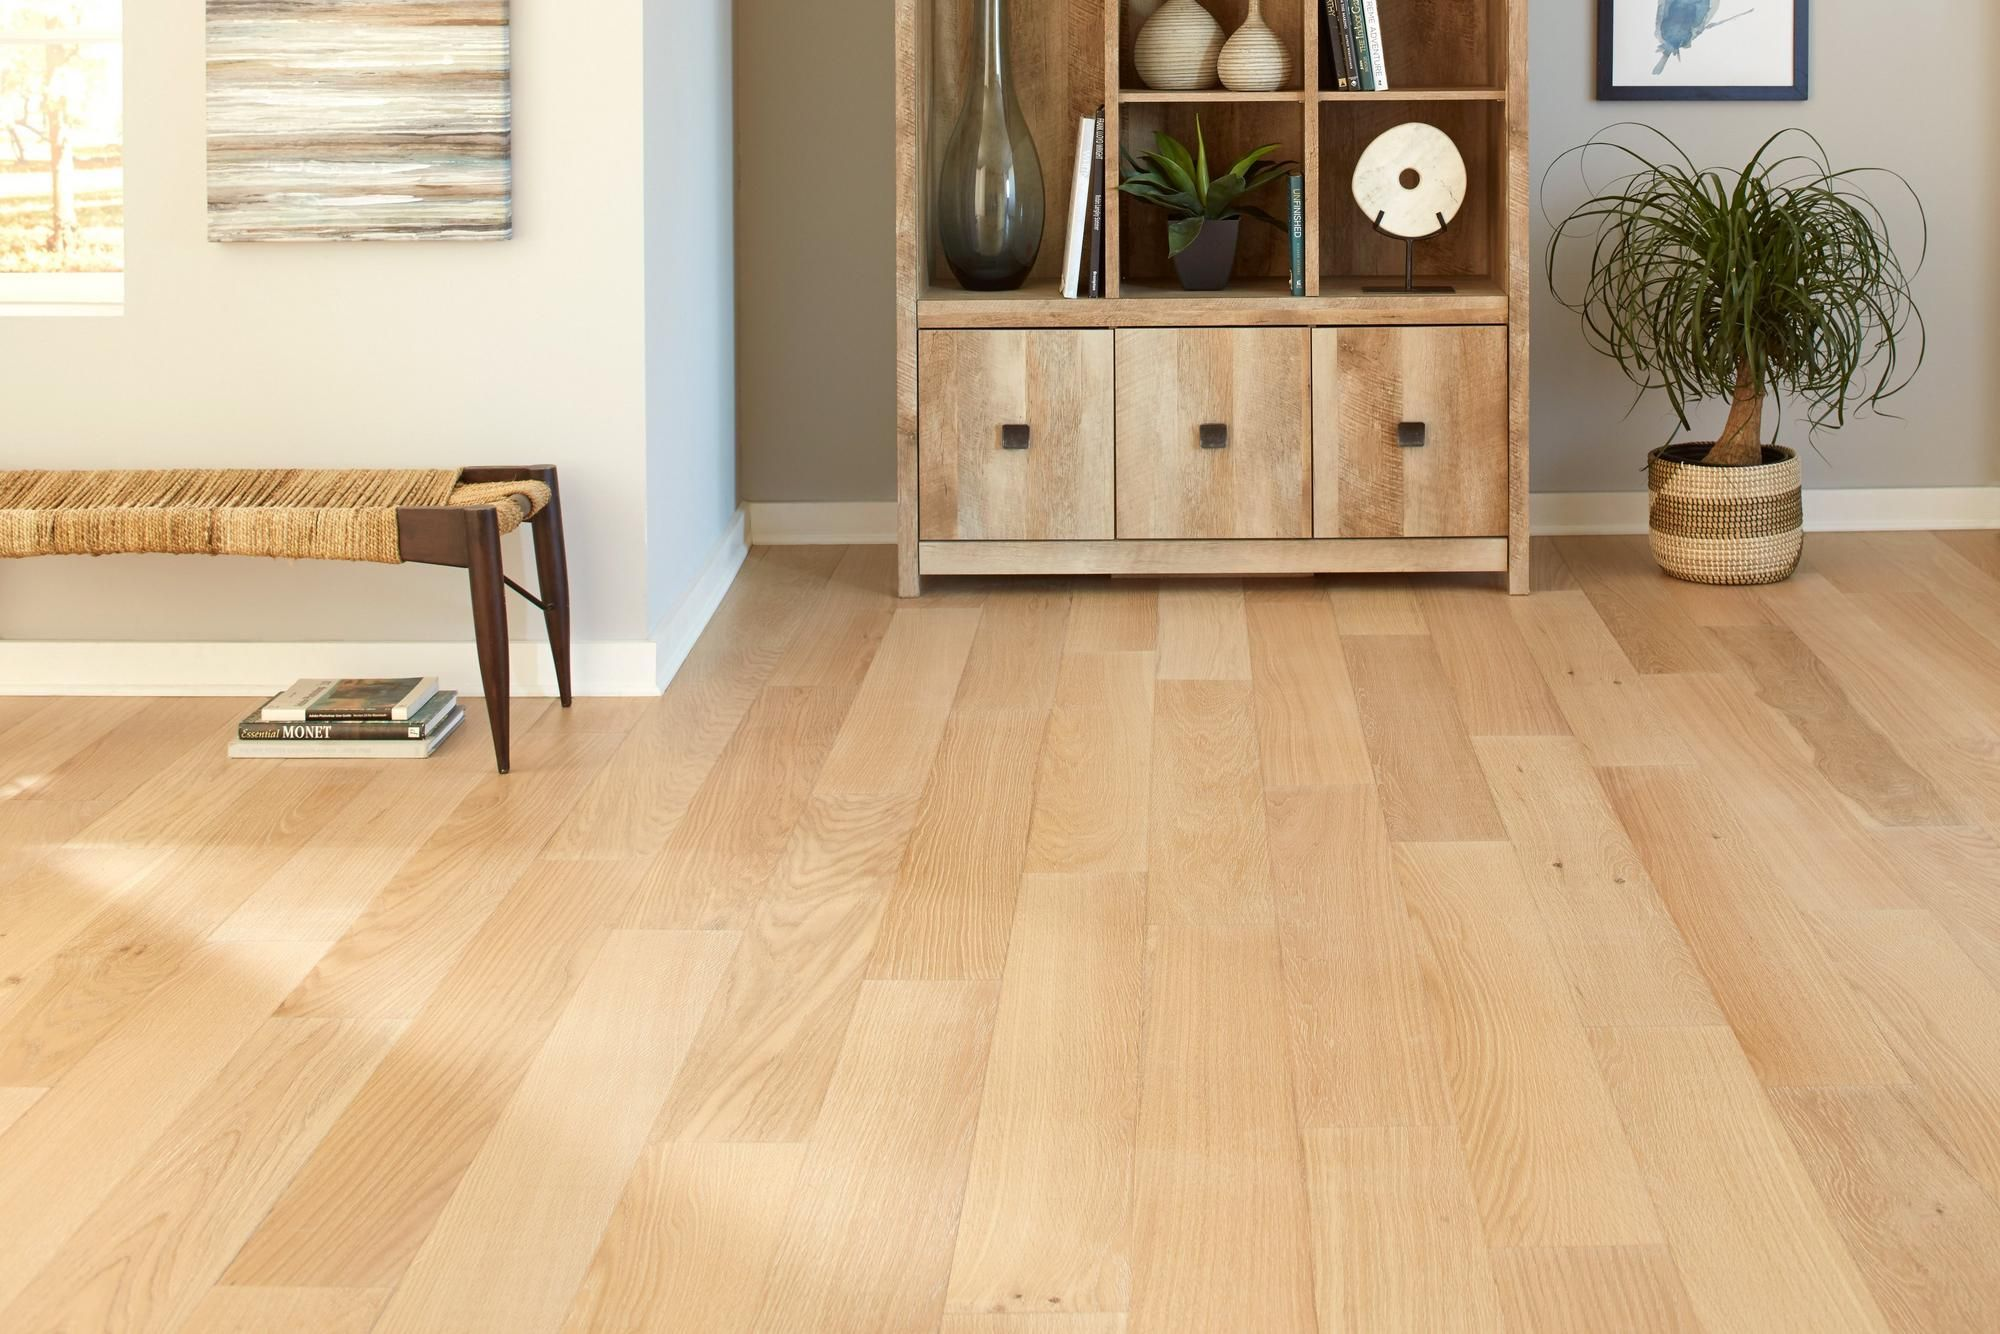 Ceruse Blonde Oak Wire Brushed Water Resistant Engineered Hardwood Engineered Hardwood Wood Floors Wide Plank Engineered Hardwood Flooring